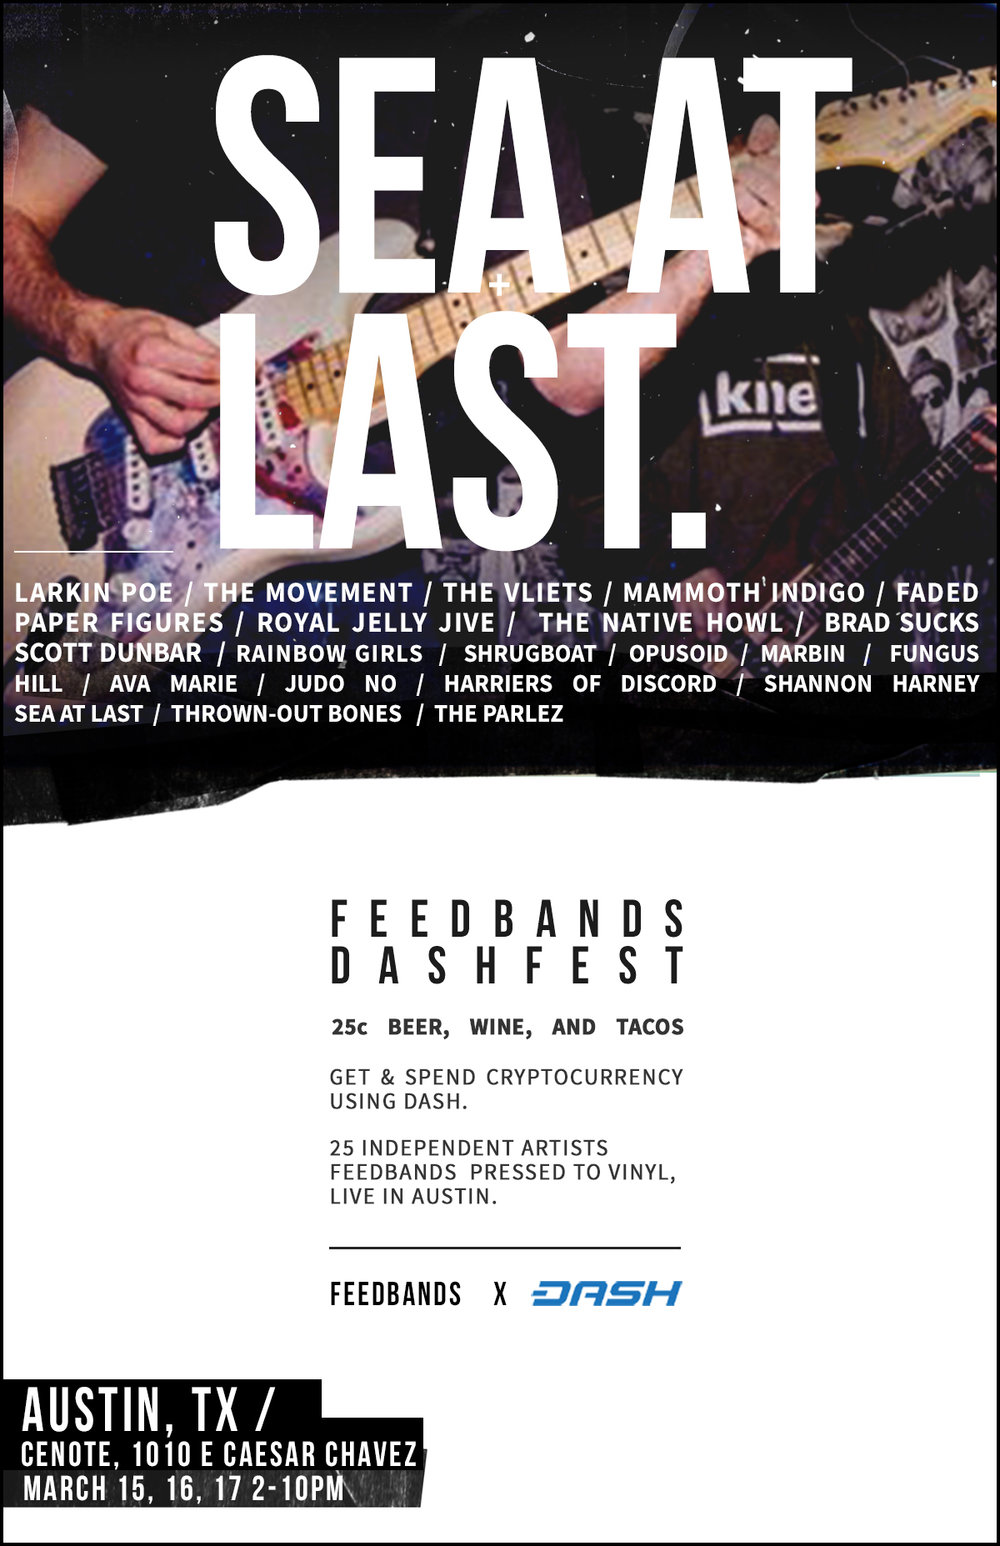 Sea At Last_Artist Announcement2_feedbands_dashfest_sxsw_gypsypop_records.jpg